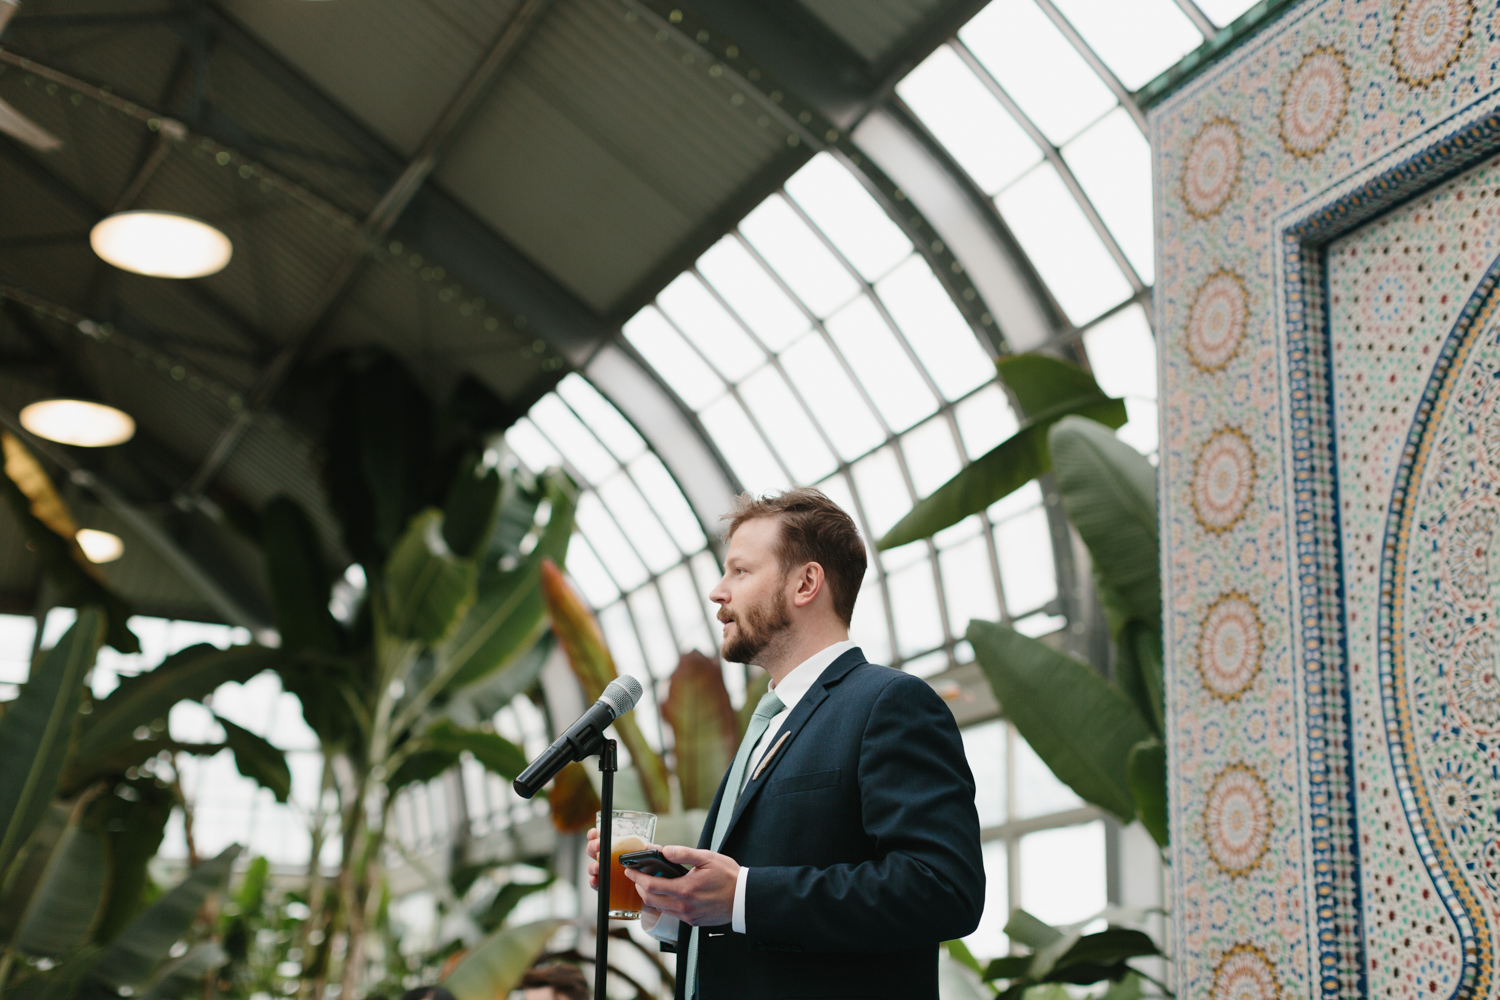 Chicago Garfield Park Conservatory Wedding by Northern Michigan Photographer Mae Stier-078.jpg